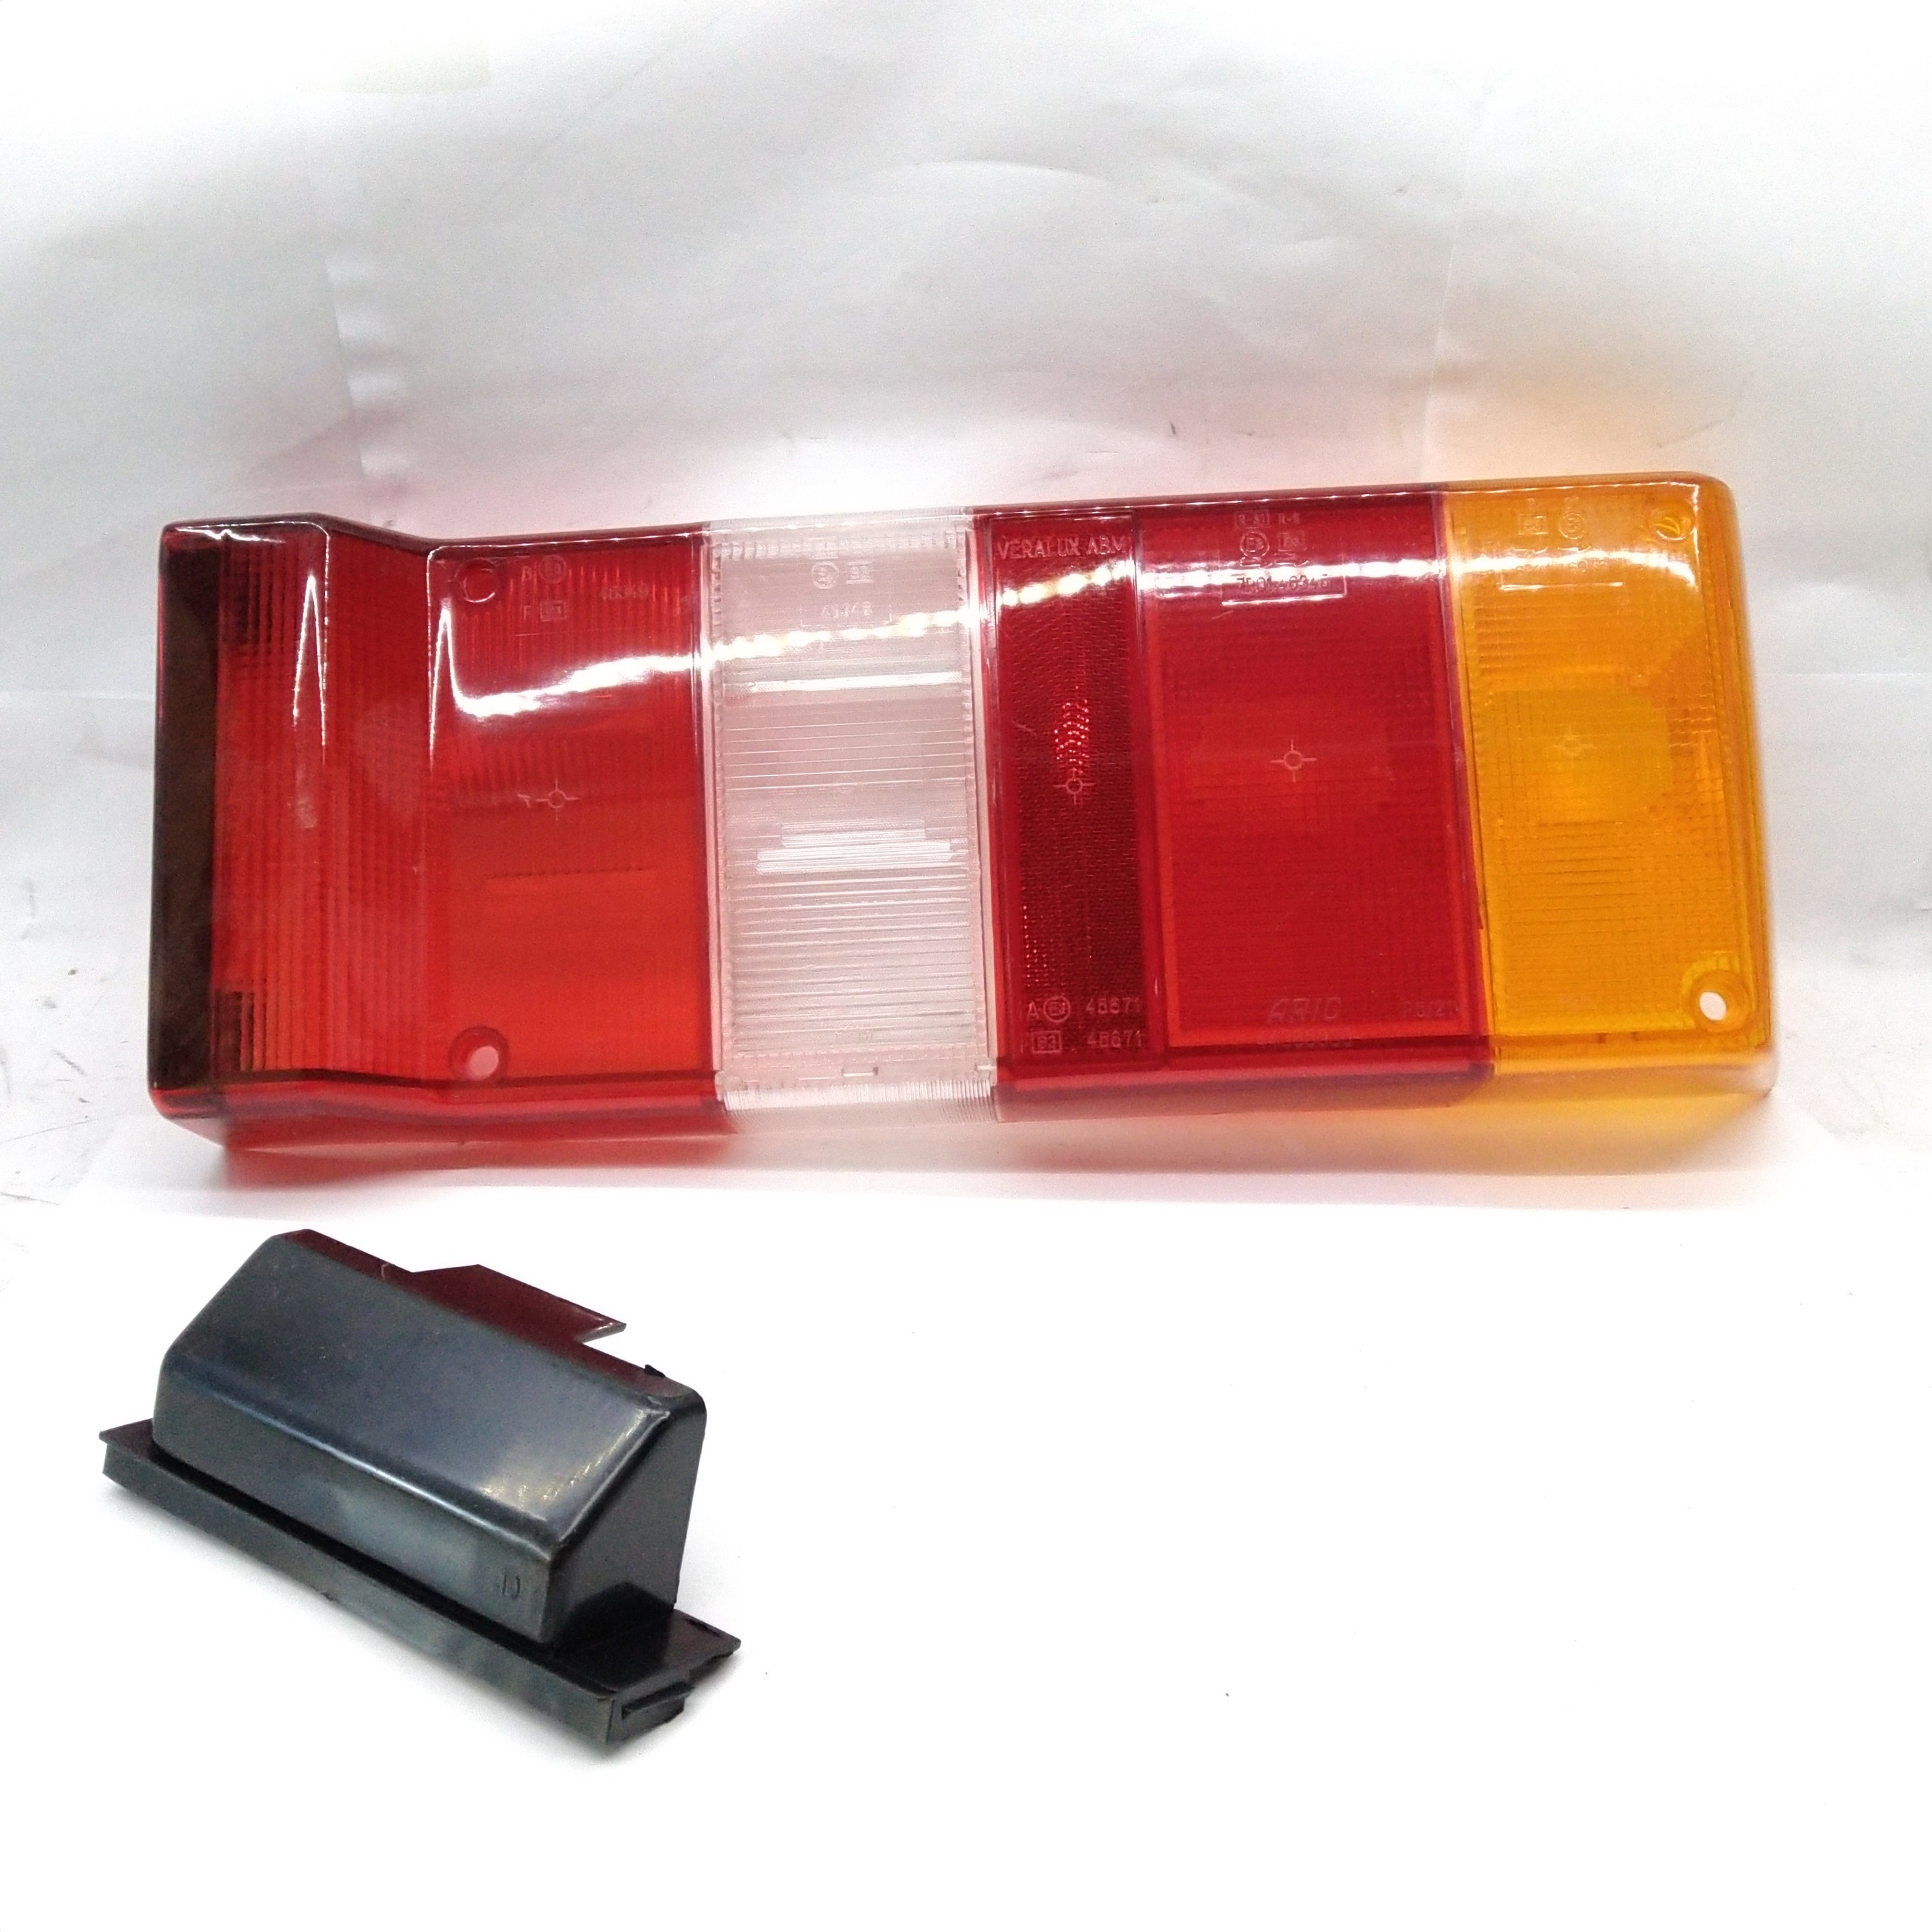 FANALE LUCE POSTERIORE DX AUTOBIANCHI Y10 - LANCIA Y10 ARIC PER 5974453